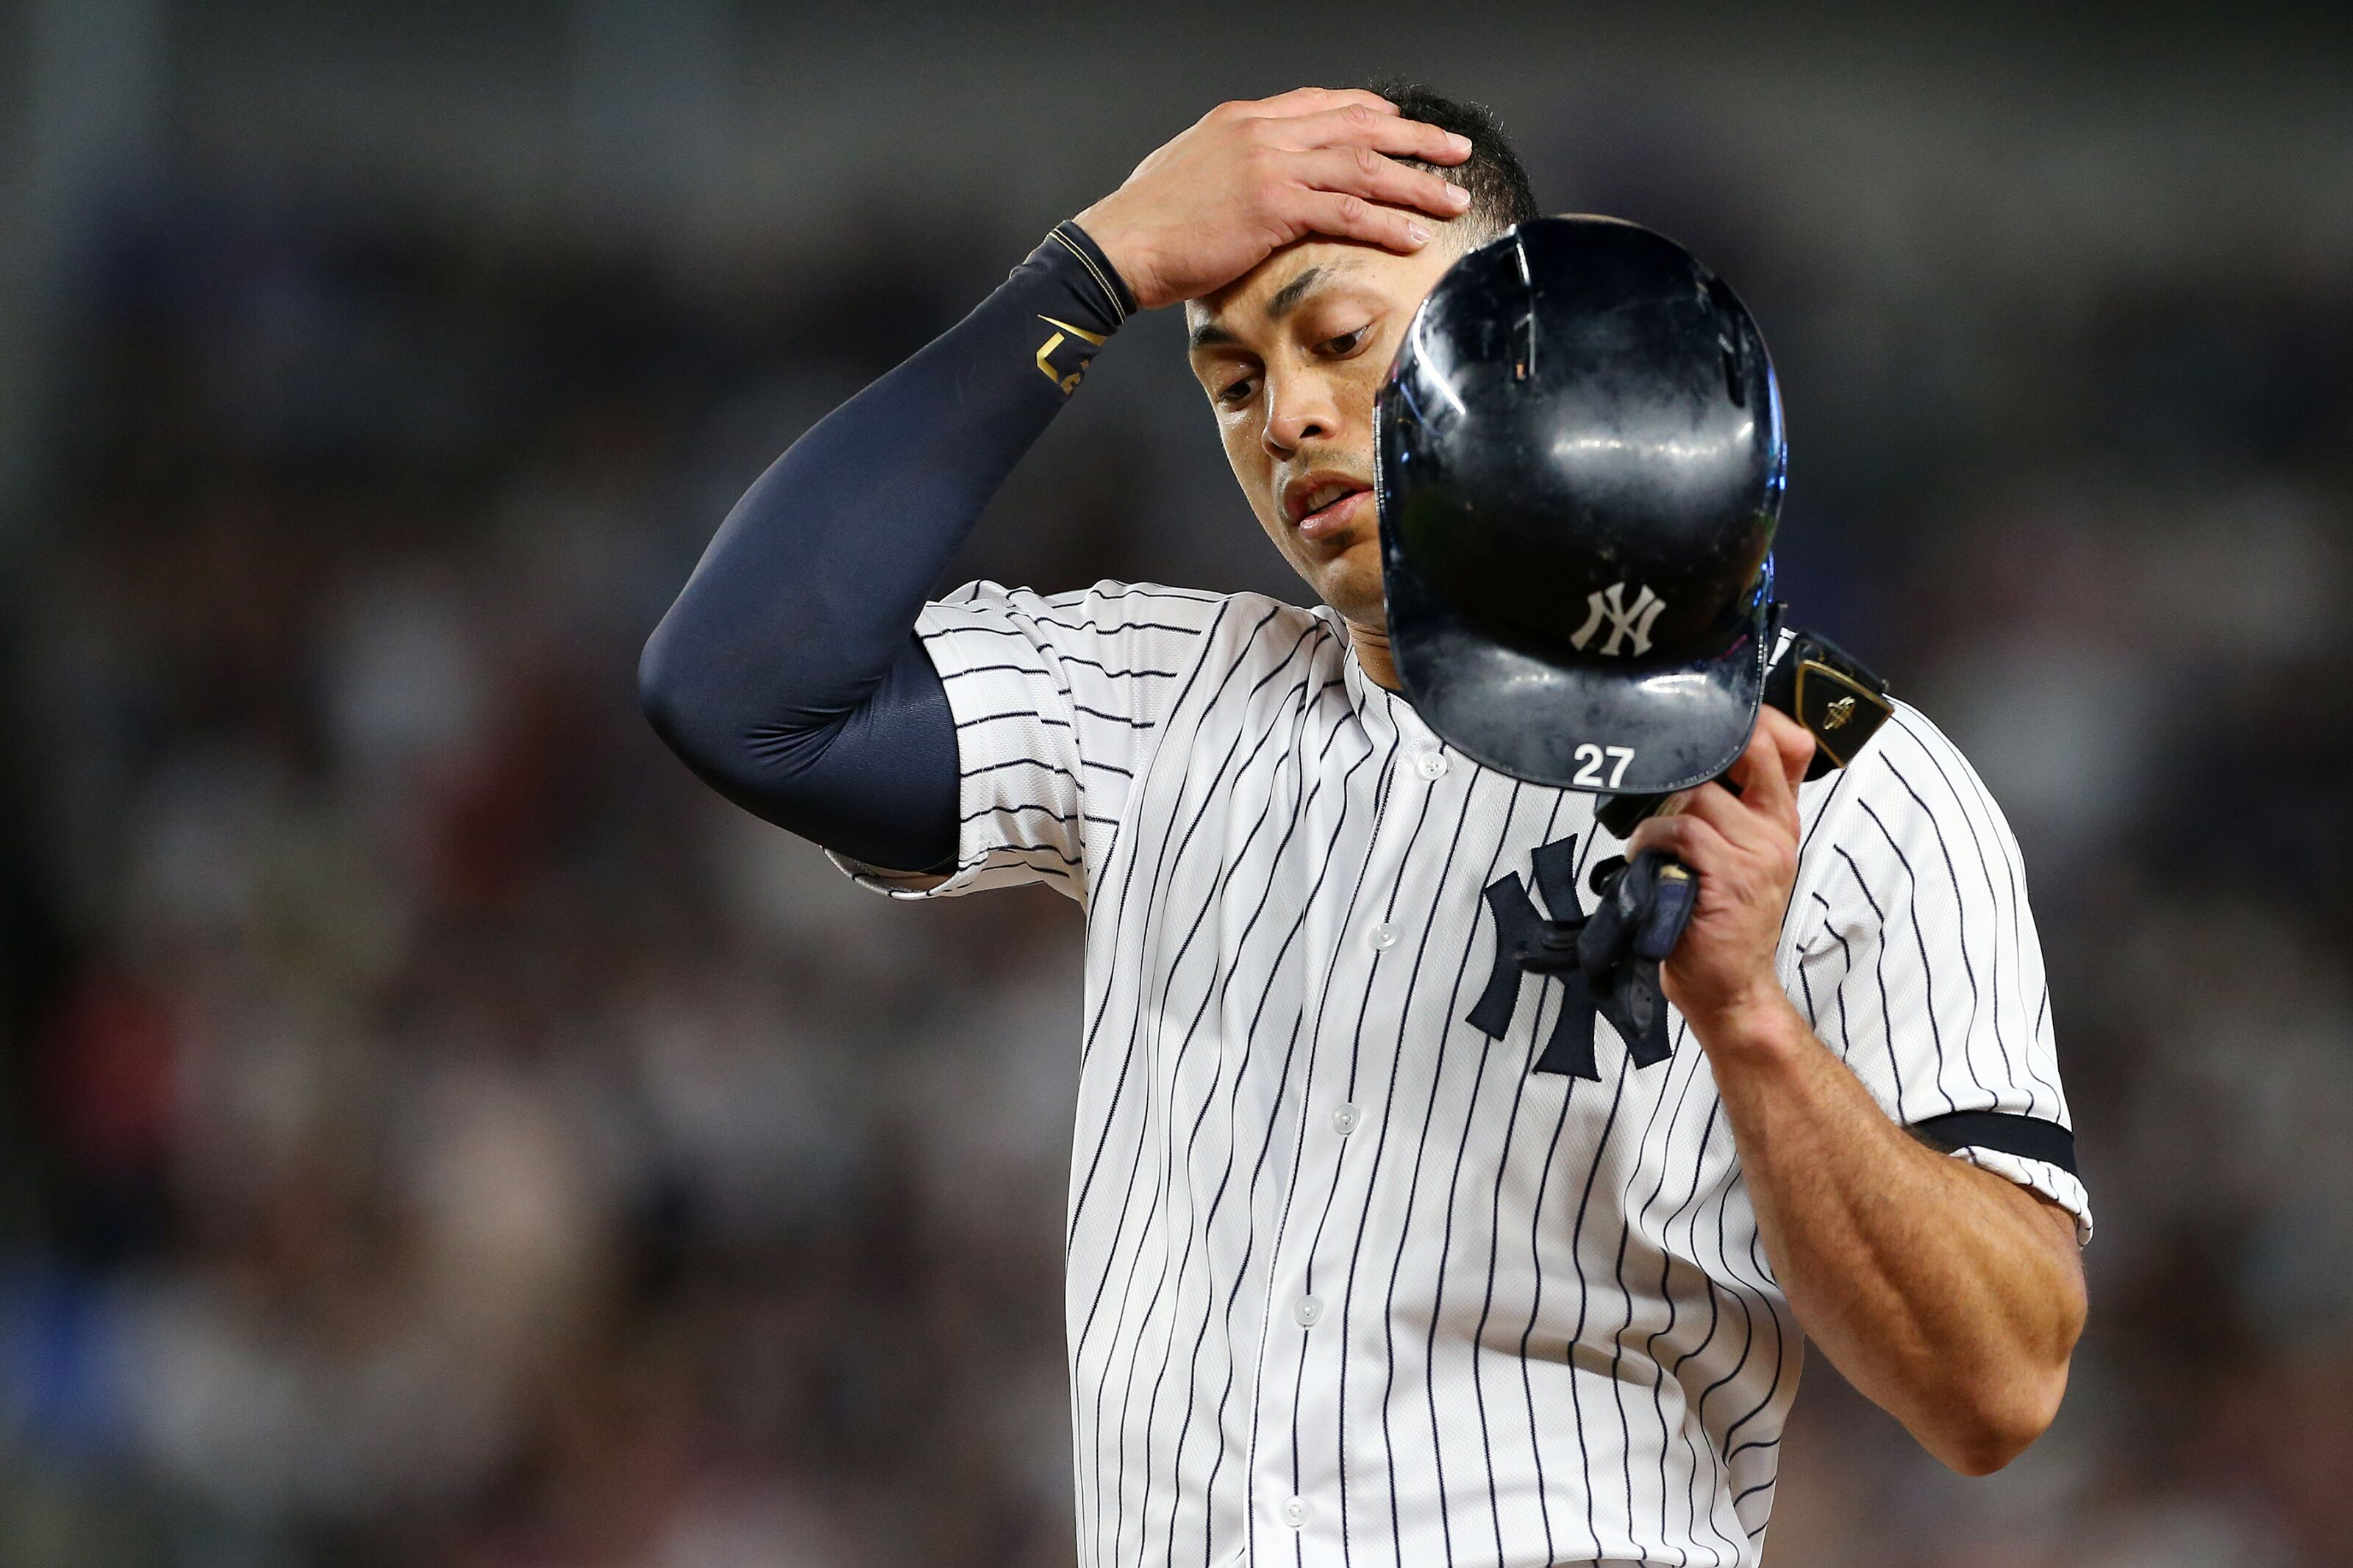 Yankees: Stanton Flirting With Following in Line With Yankee Busts